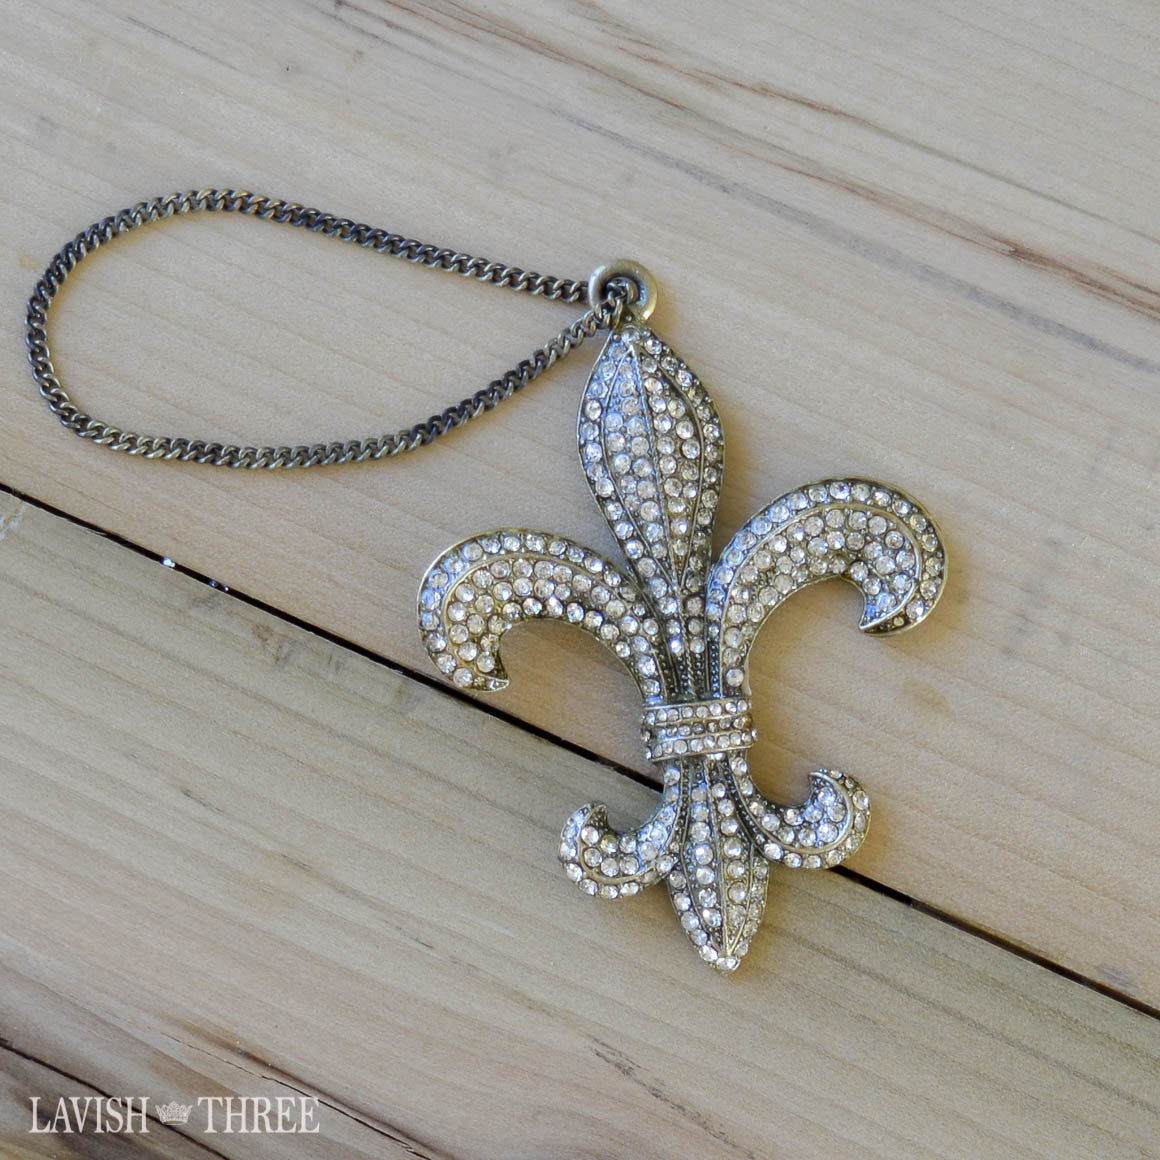 Fleur de Lis crystal ornament on chain wine bottle decor gift